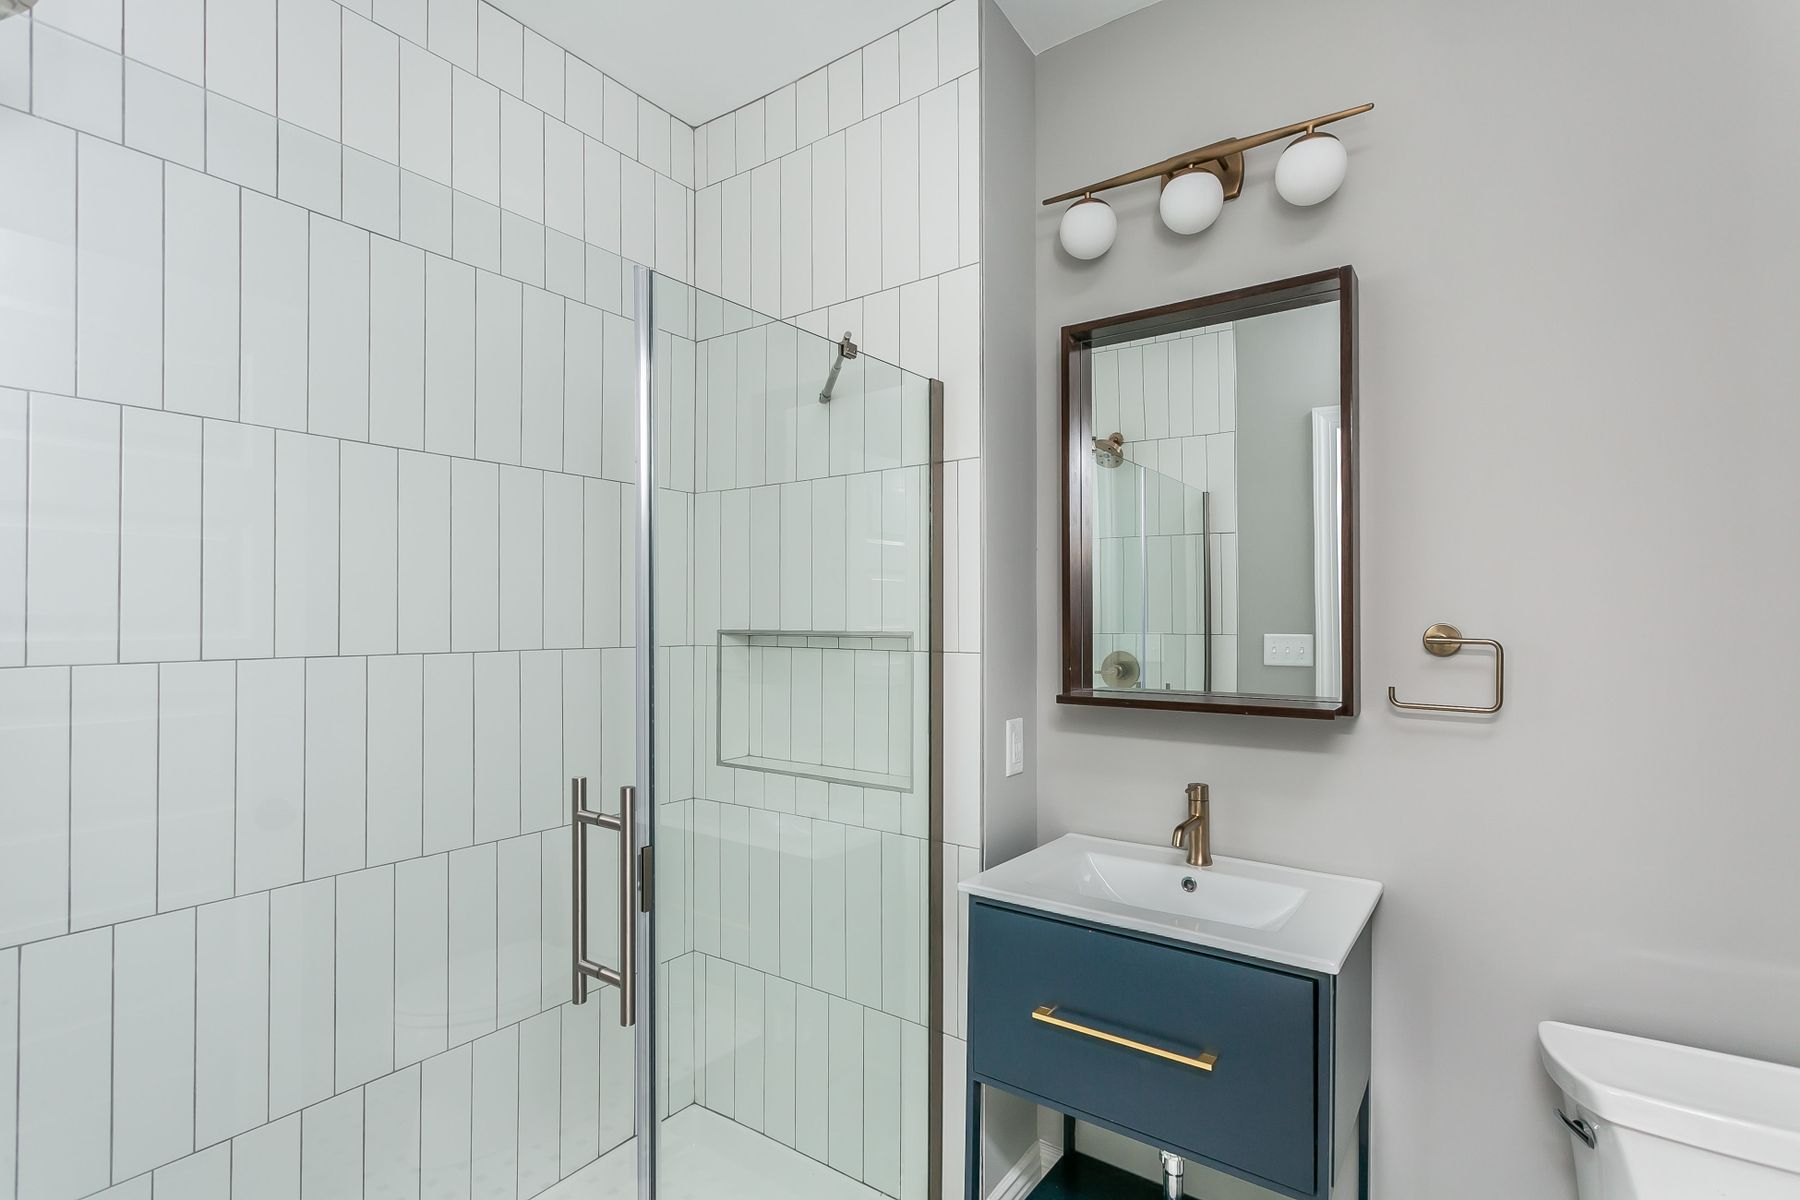 Bathroom remodel in Baltimore Row Home